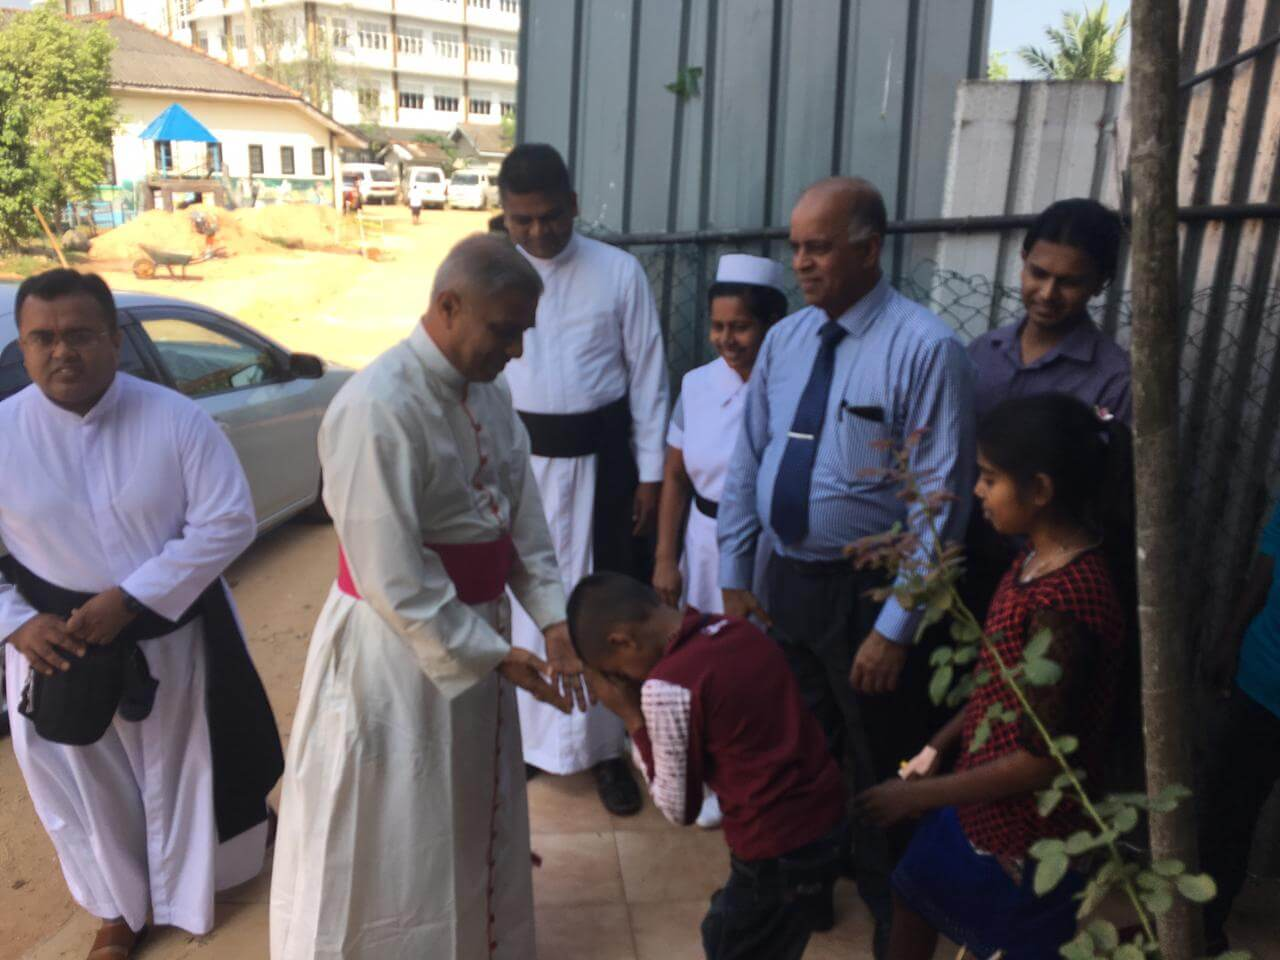 Bishop Perera distributes the presents brought for the children and their families - Sri Lanka